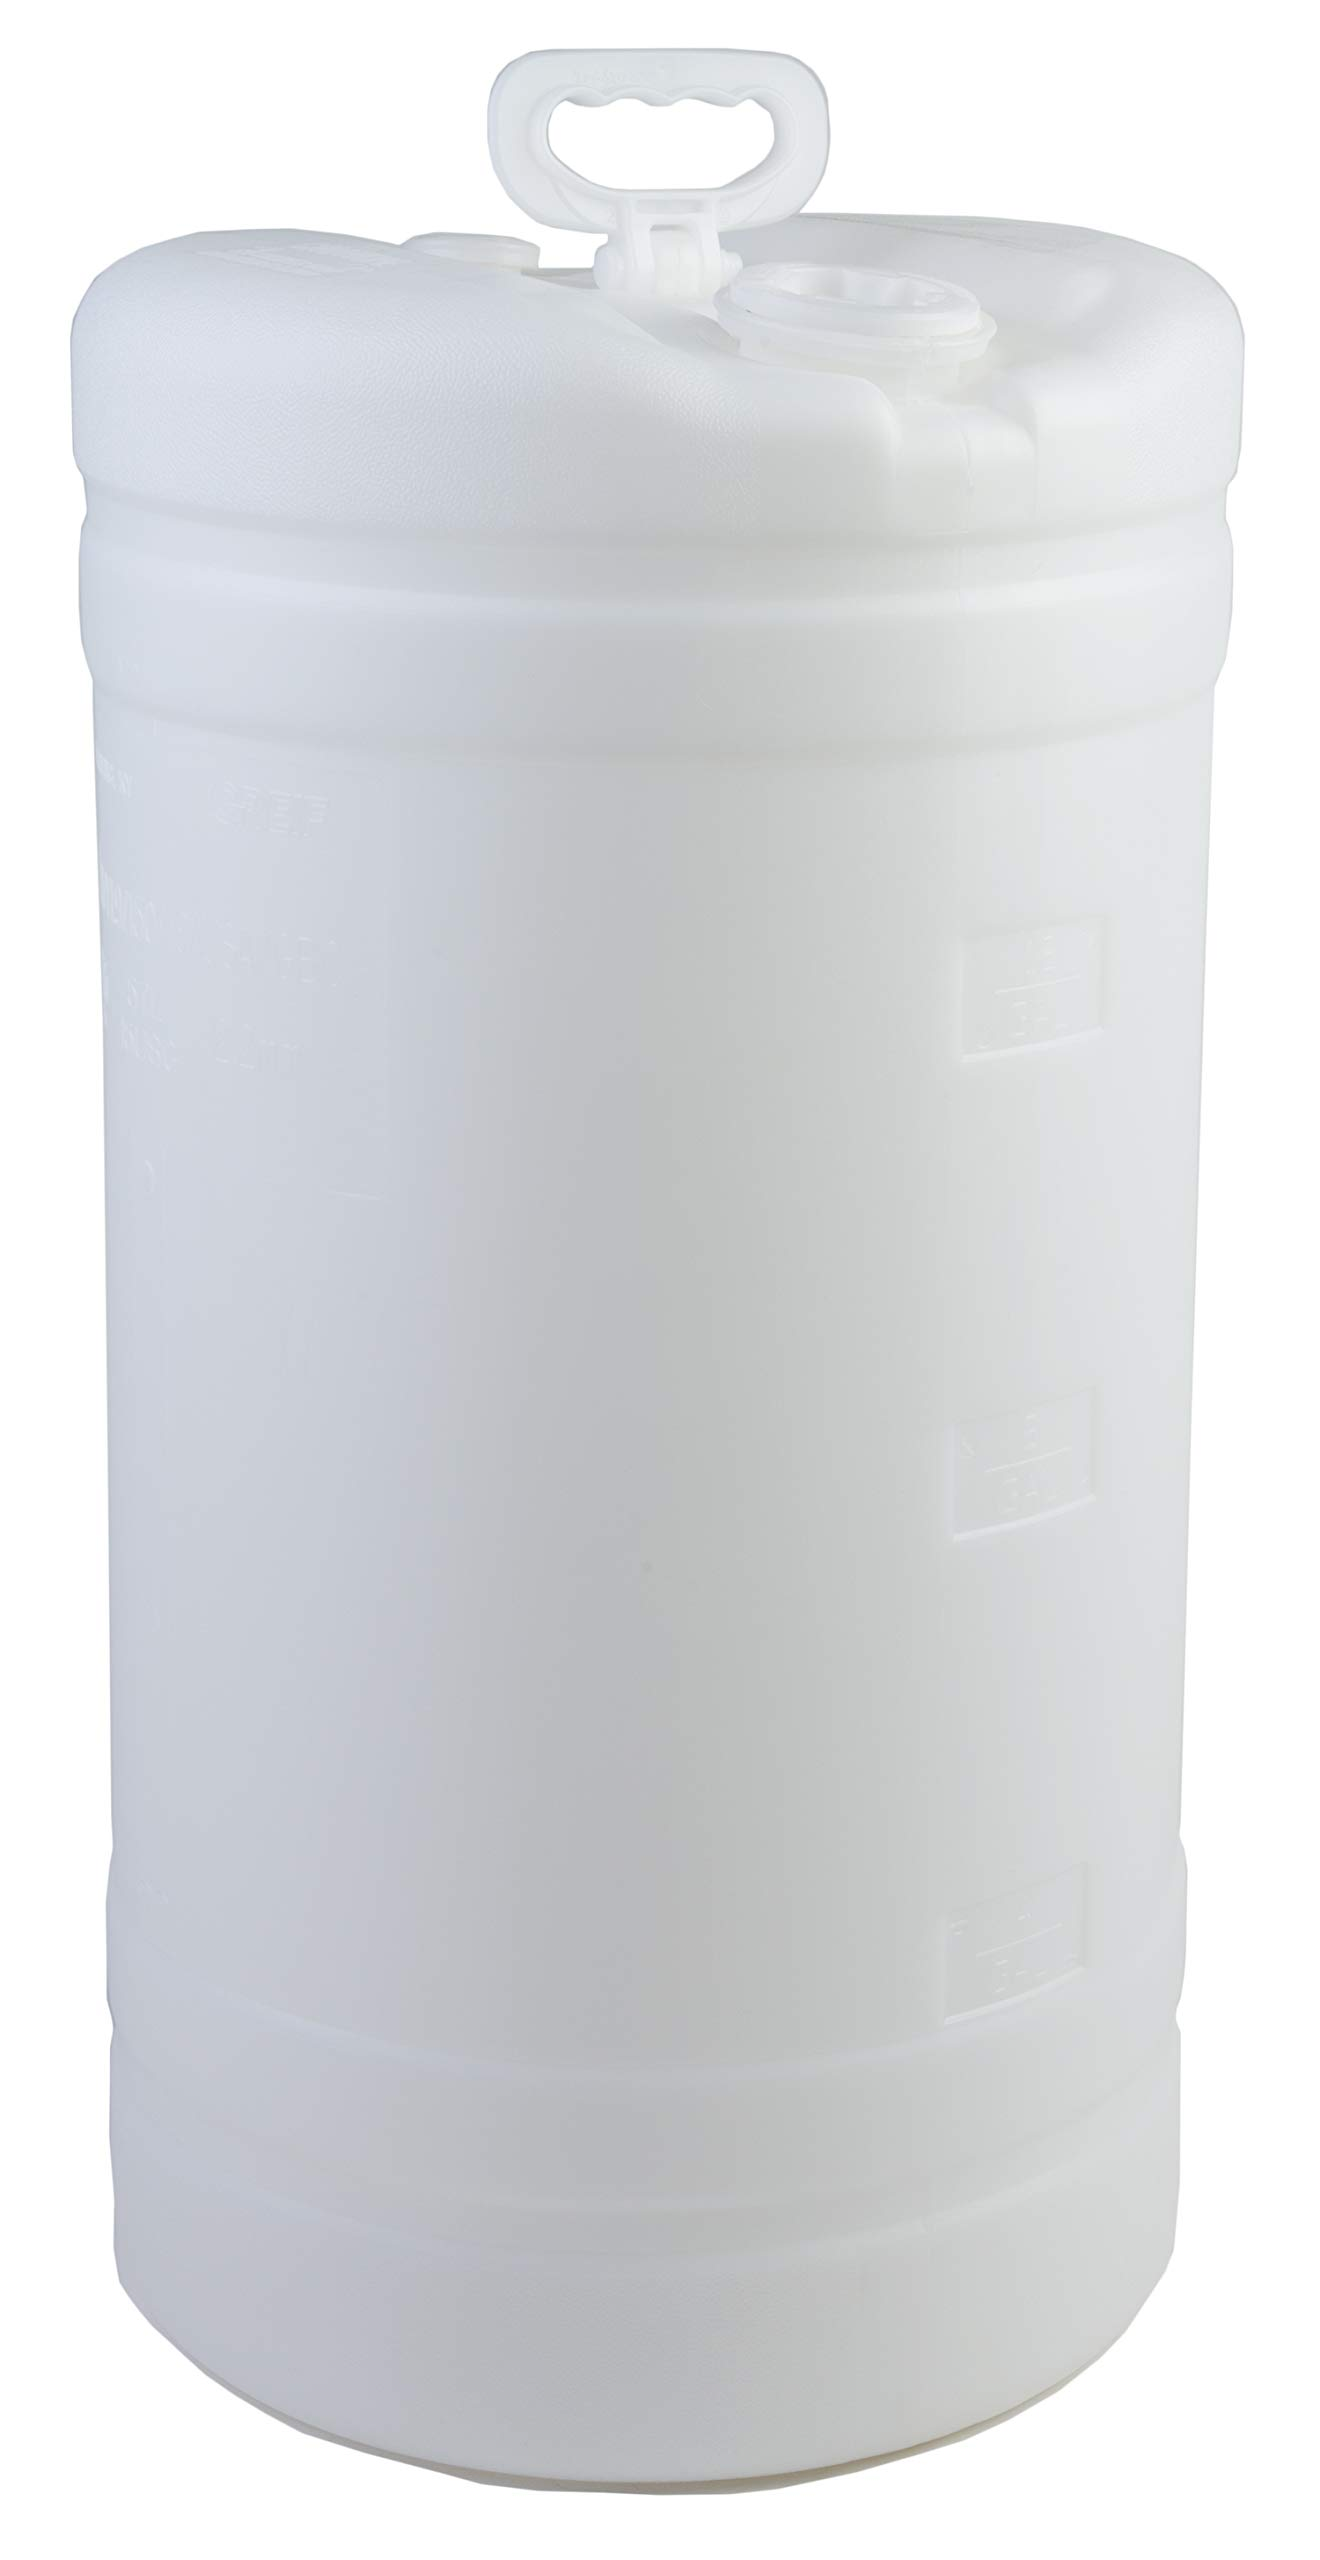 Hudson Exchange 15 Gallon Tight Head Drum with 2'' & 3/4'' Fittings, UN Rated, HDPE, Natural